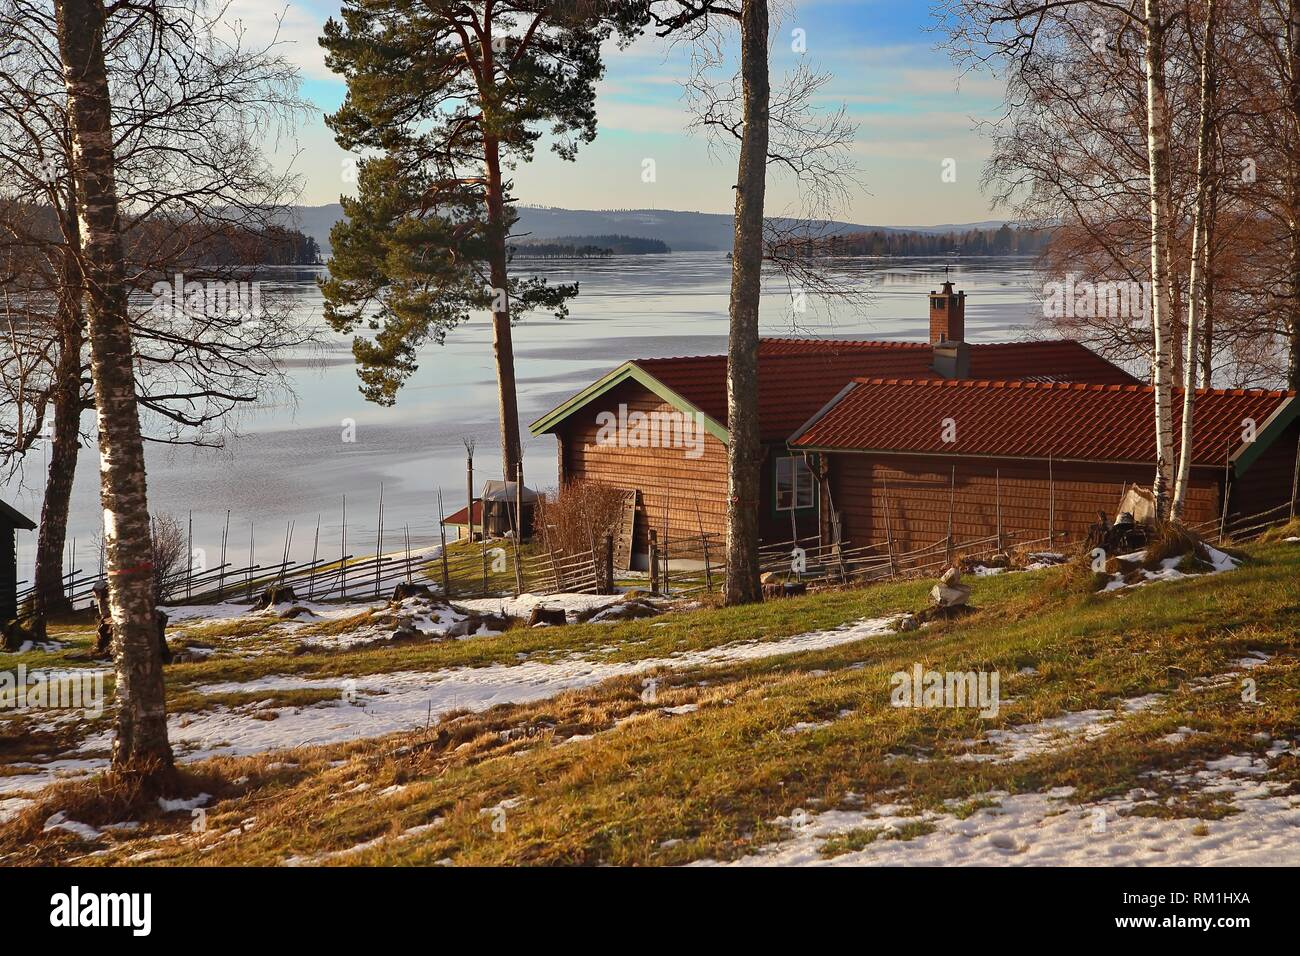 Late winter at Ludvika, Dalarna, Sweden - Stock Image